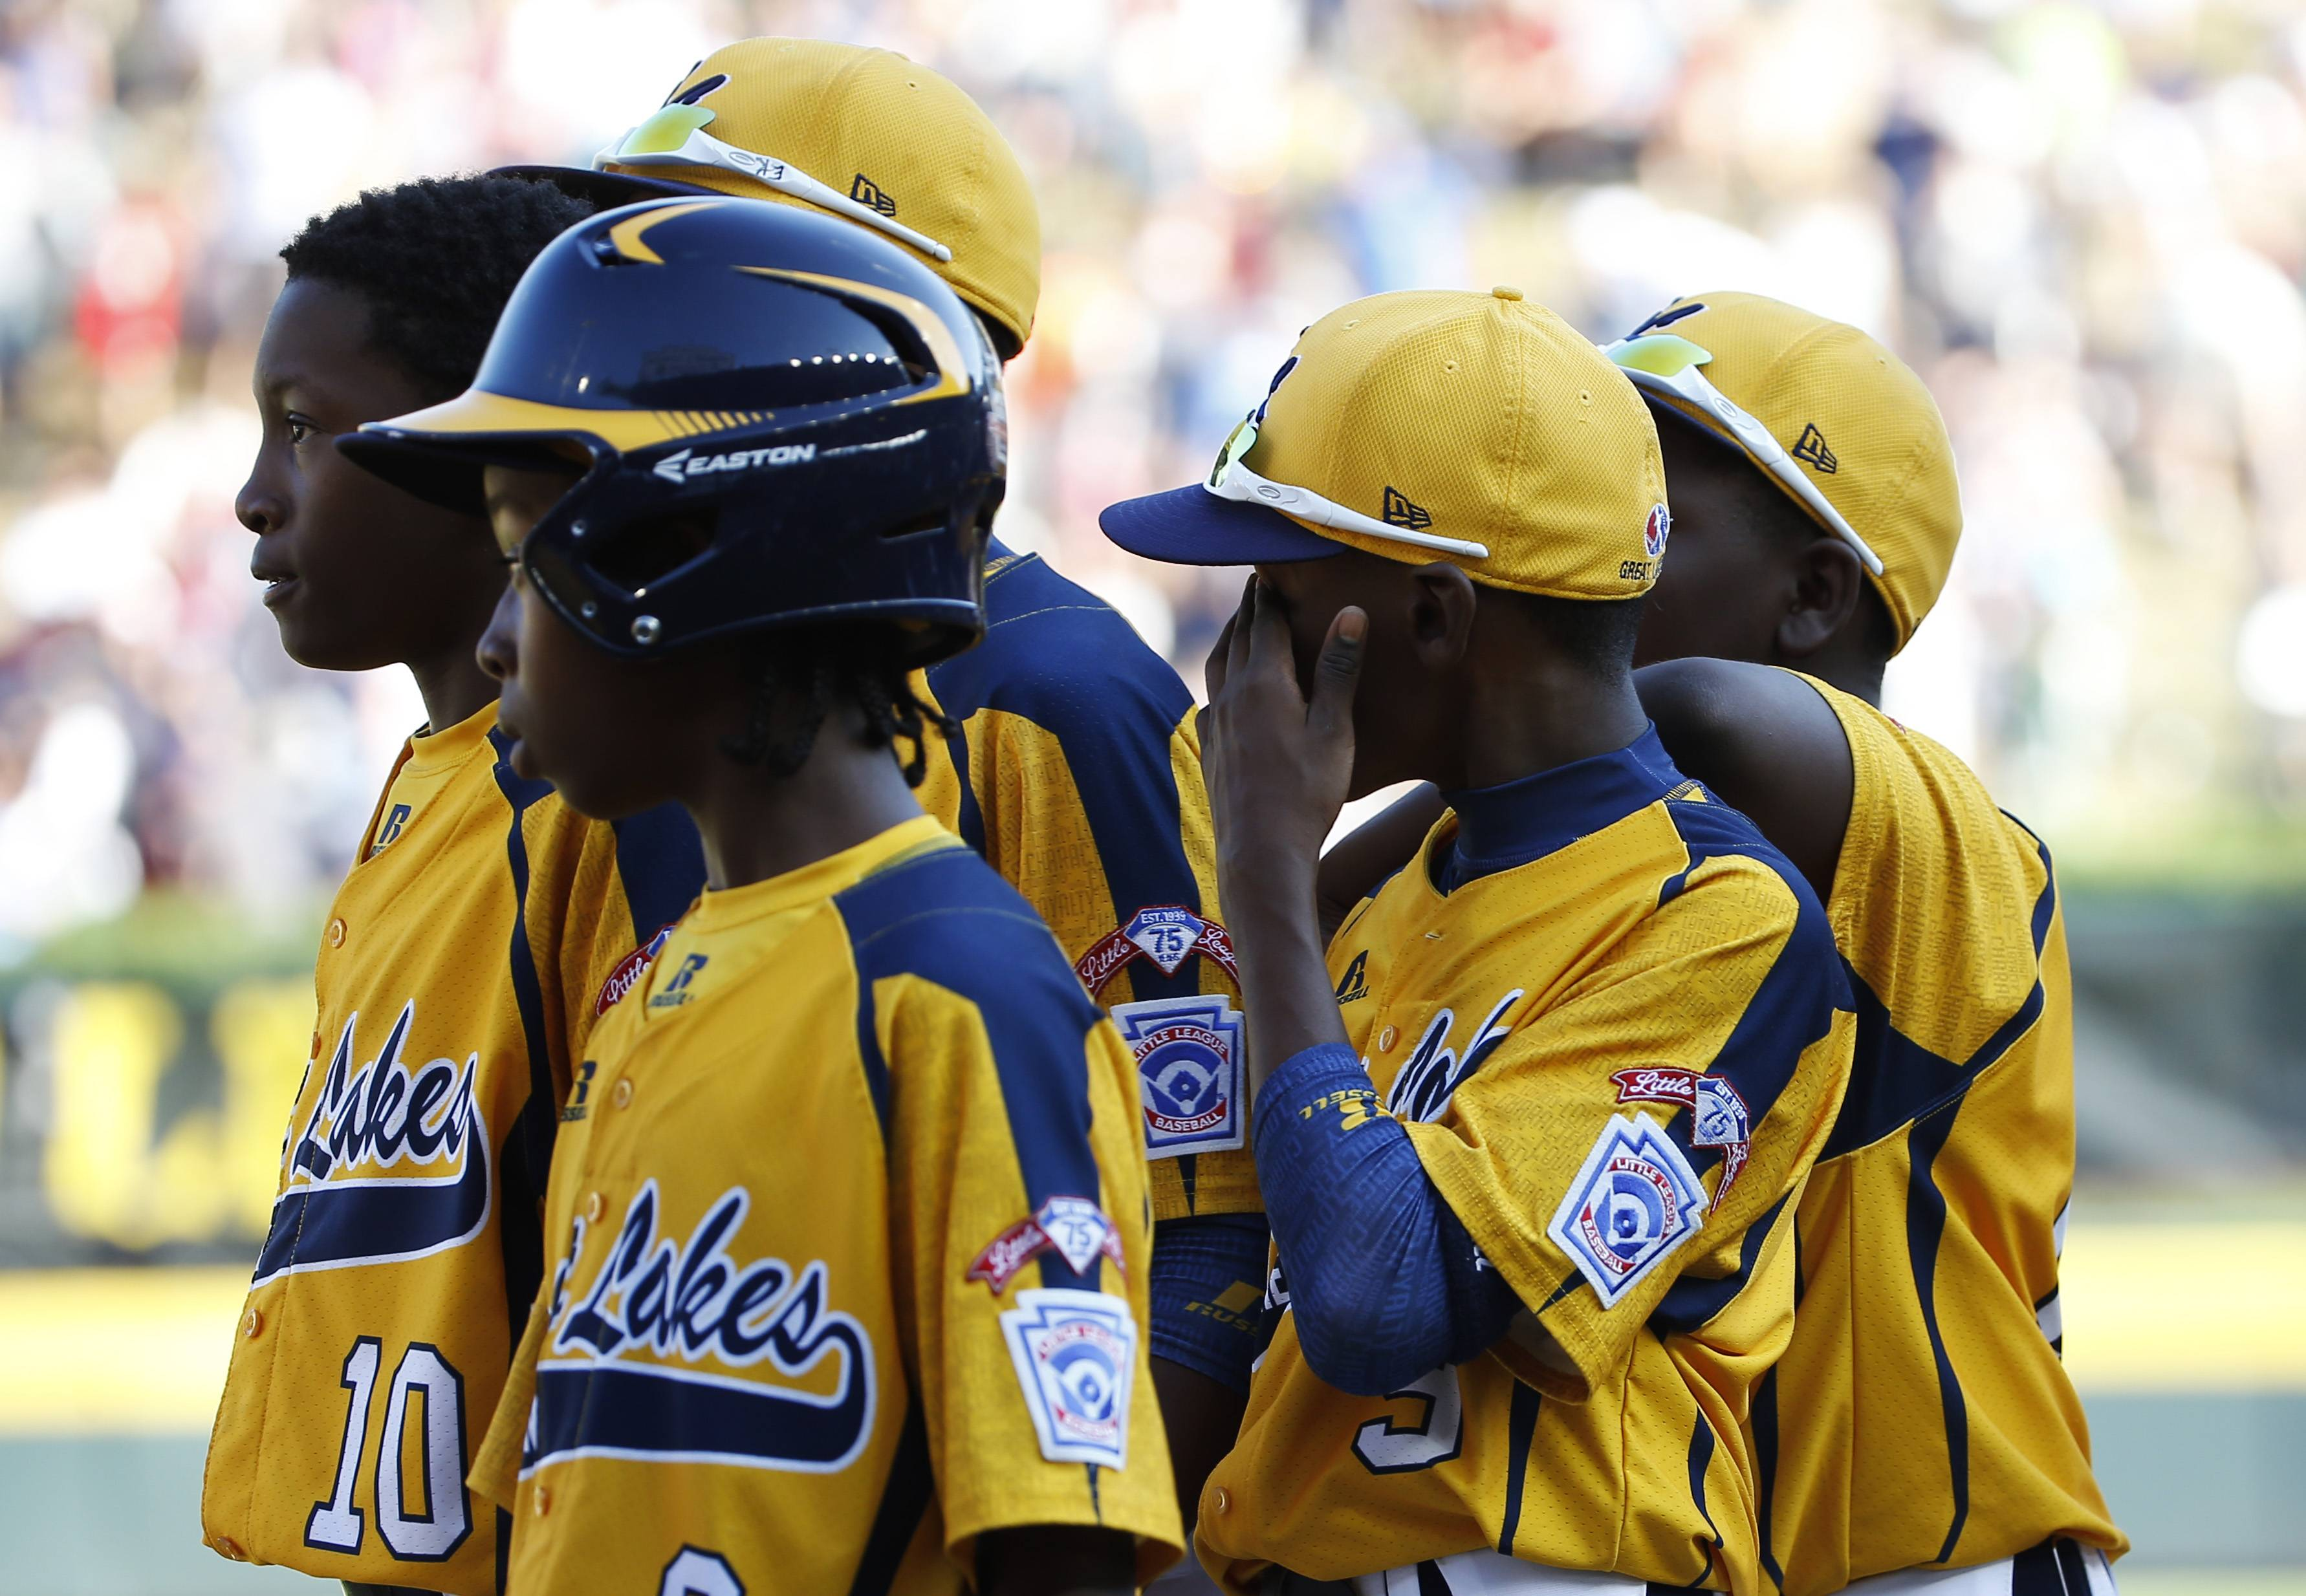 Jackie Robinson West players watch as South Korea players celebrate after winning the championship baseball game at the Little League World Series, Sunday, in South Williamsport, Pa. South Korea won 8-4.